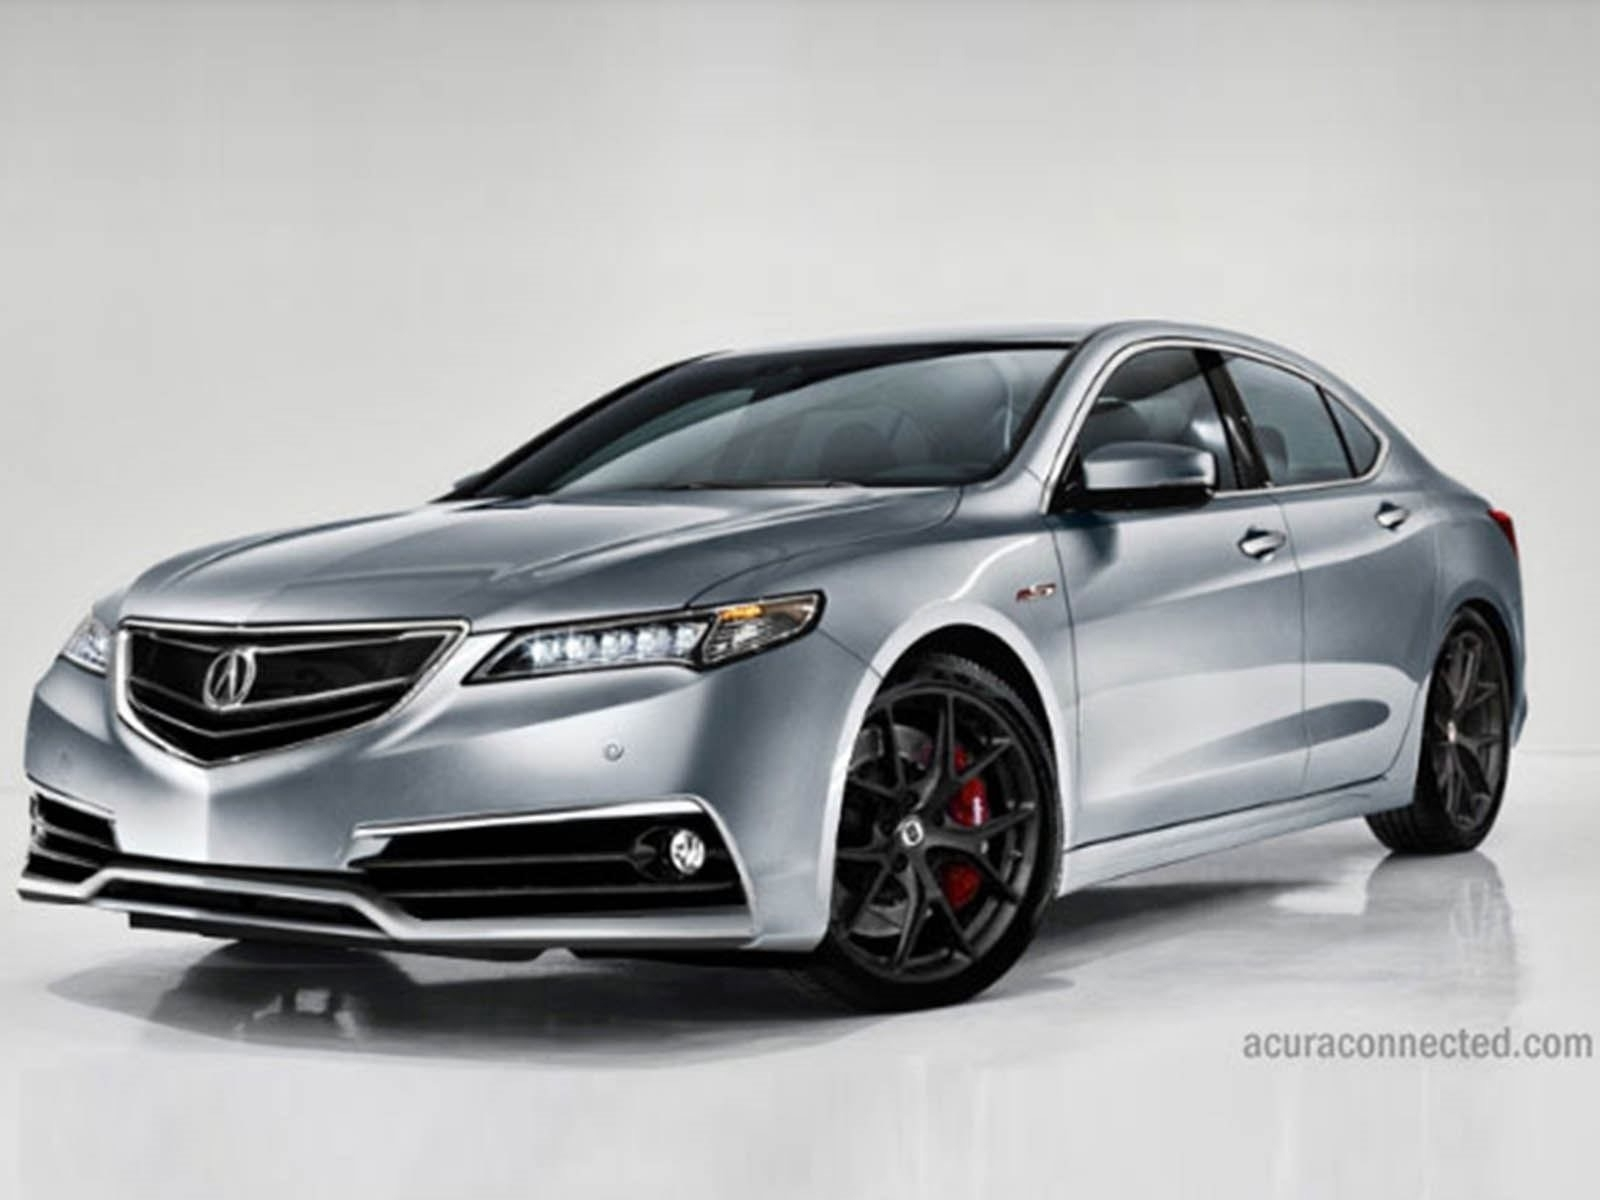 72 A 2019 Acura Tl Wallpaper   Review Cars Review Cars 1600x1200